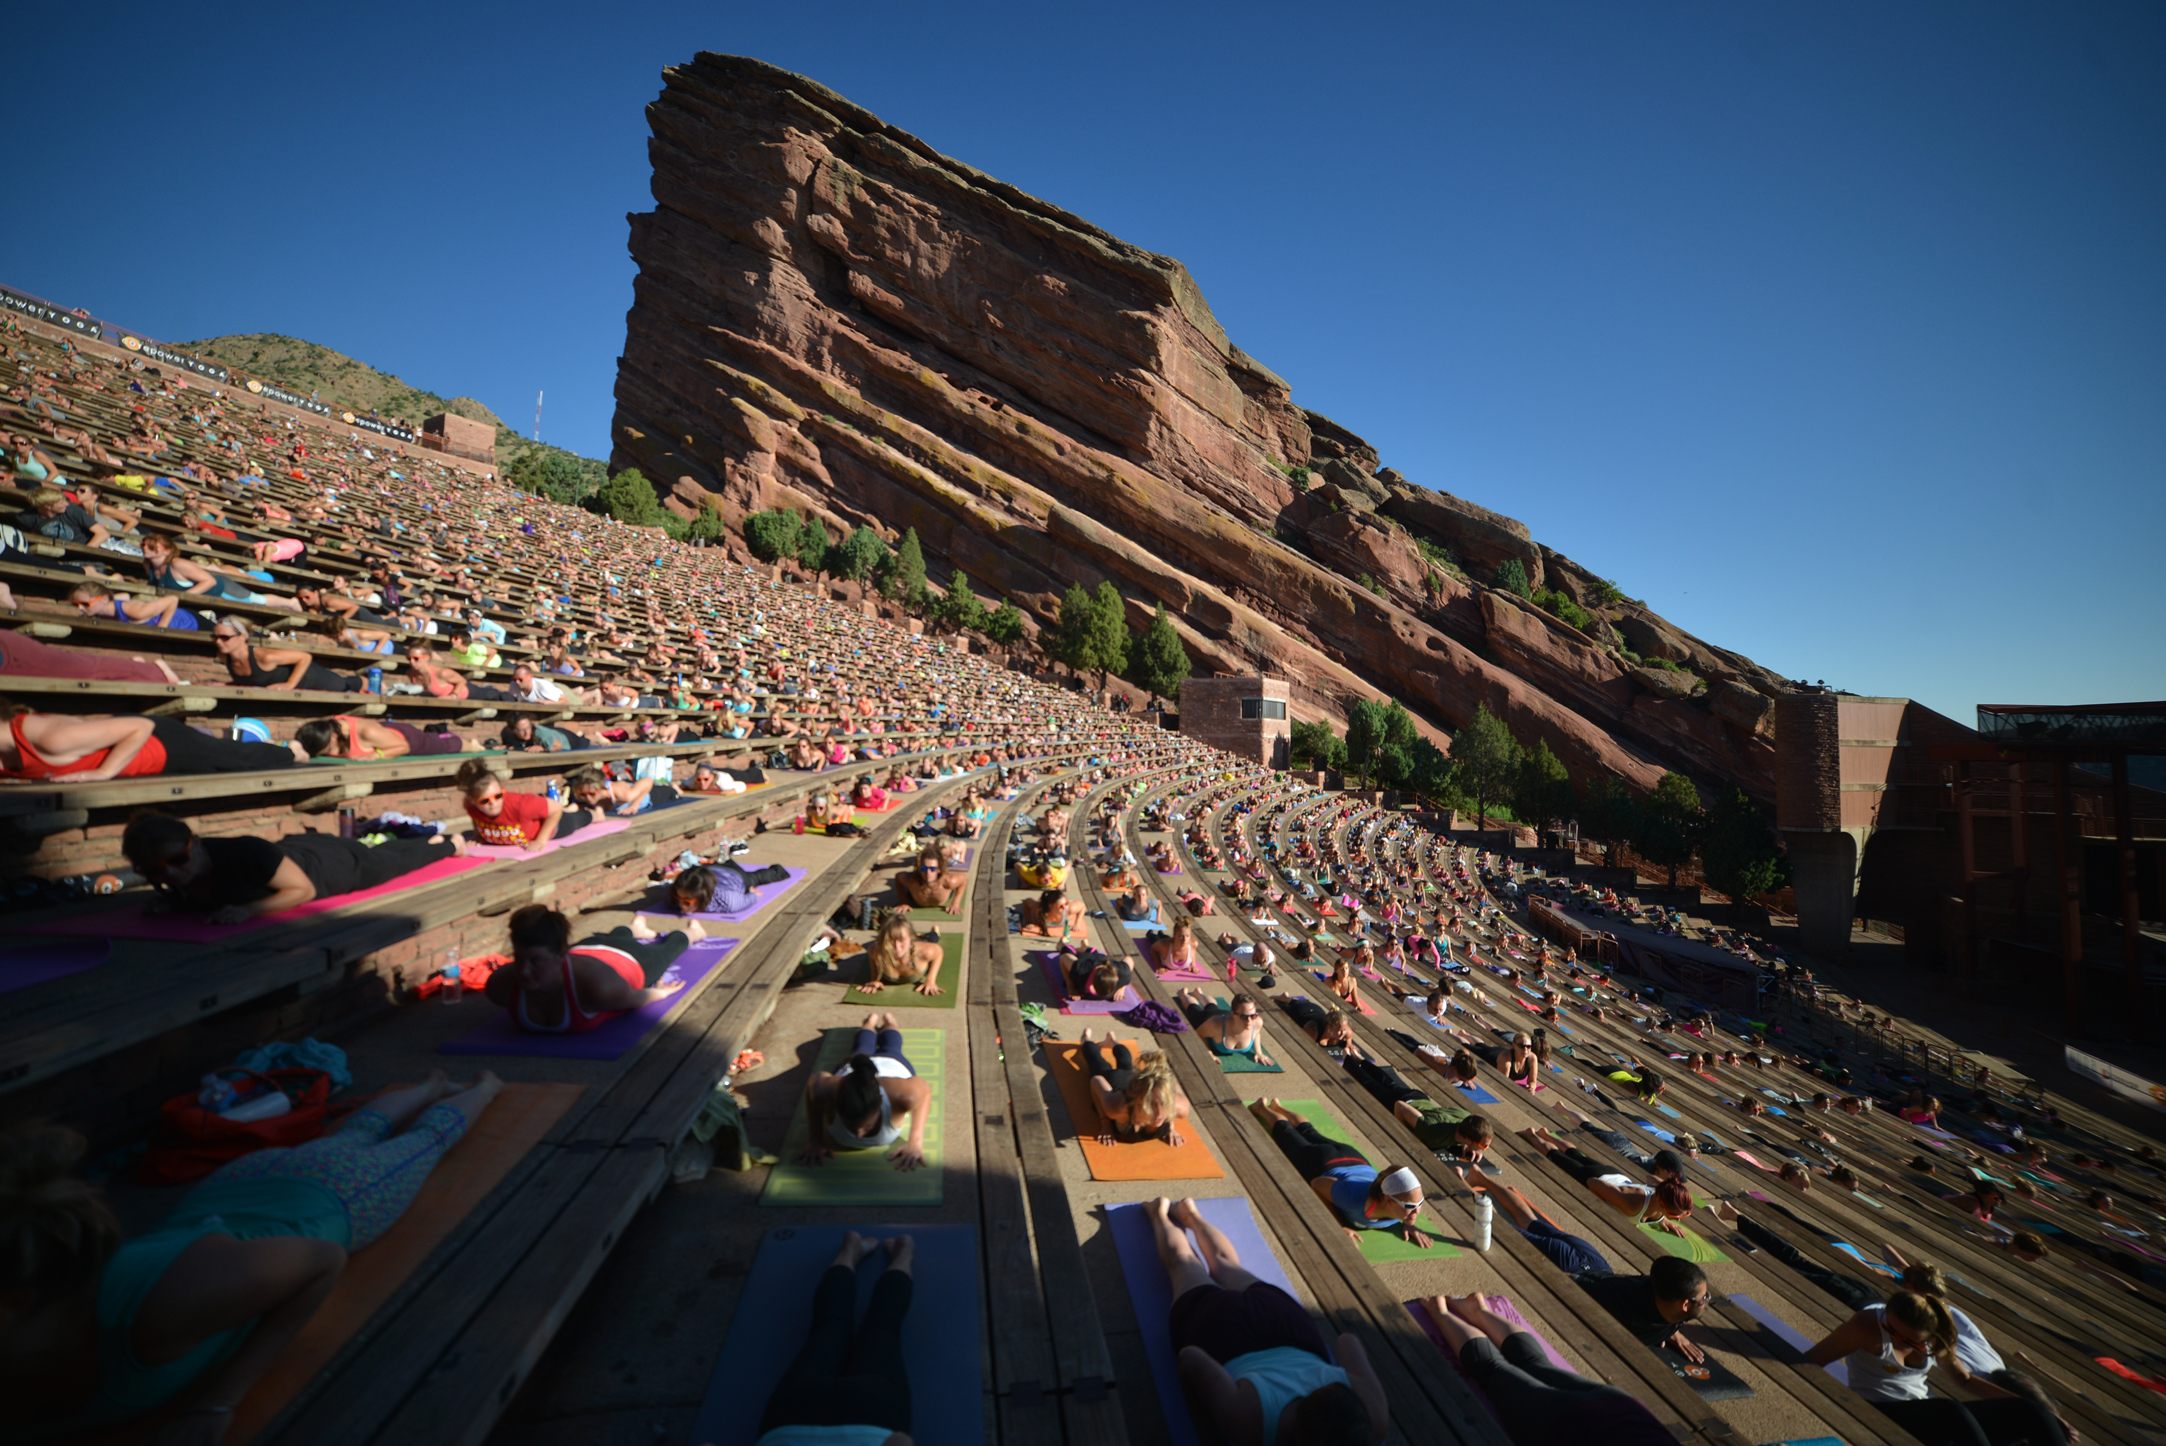 Hundreds of people practice yoga at Red Rocks (Picture: Evan Simon)